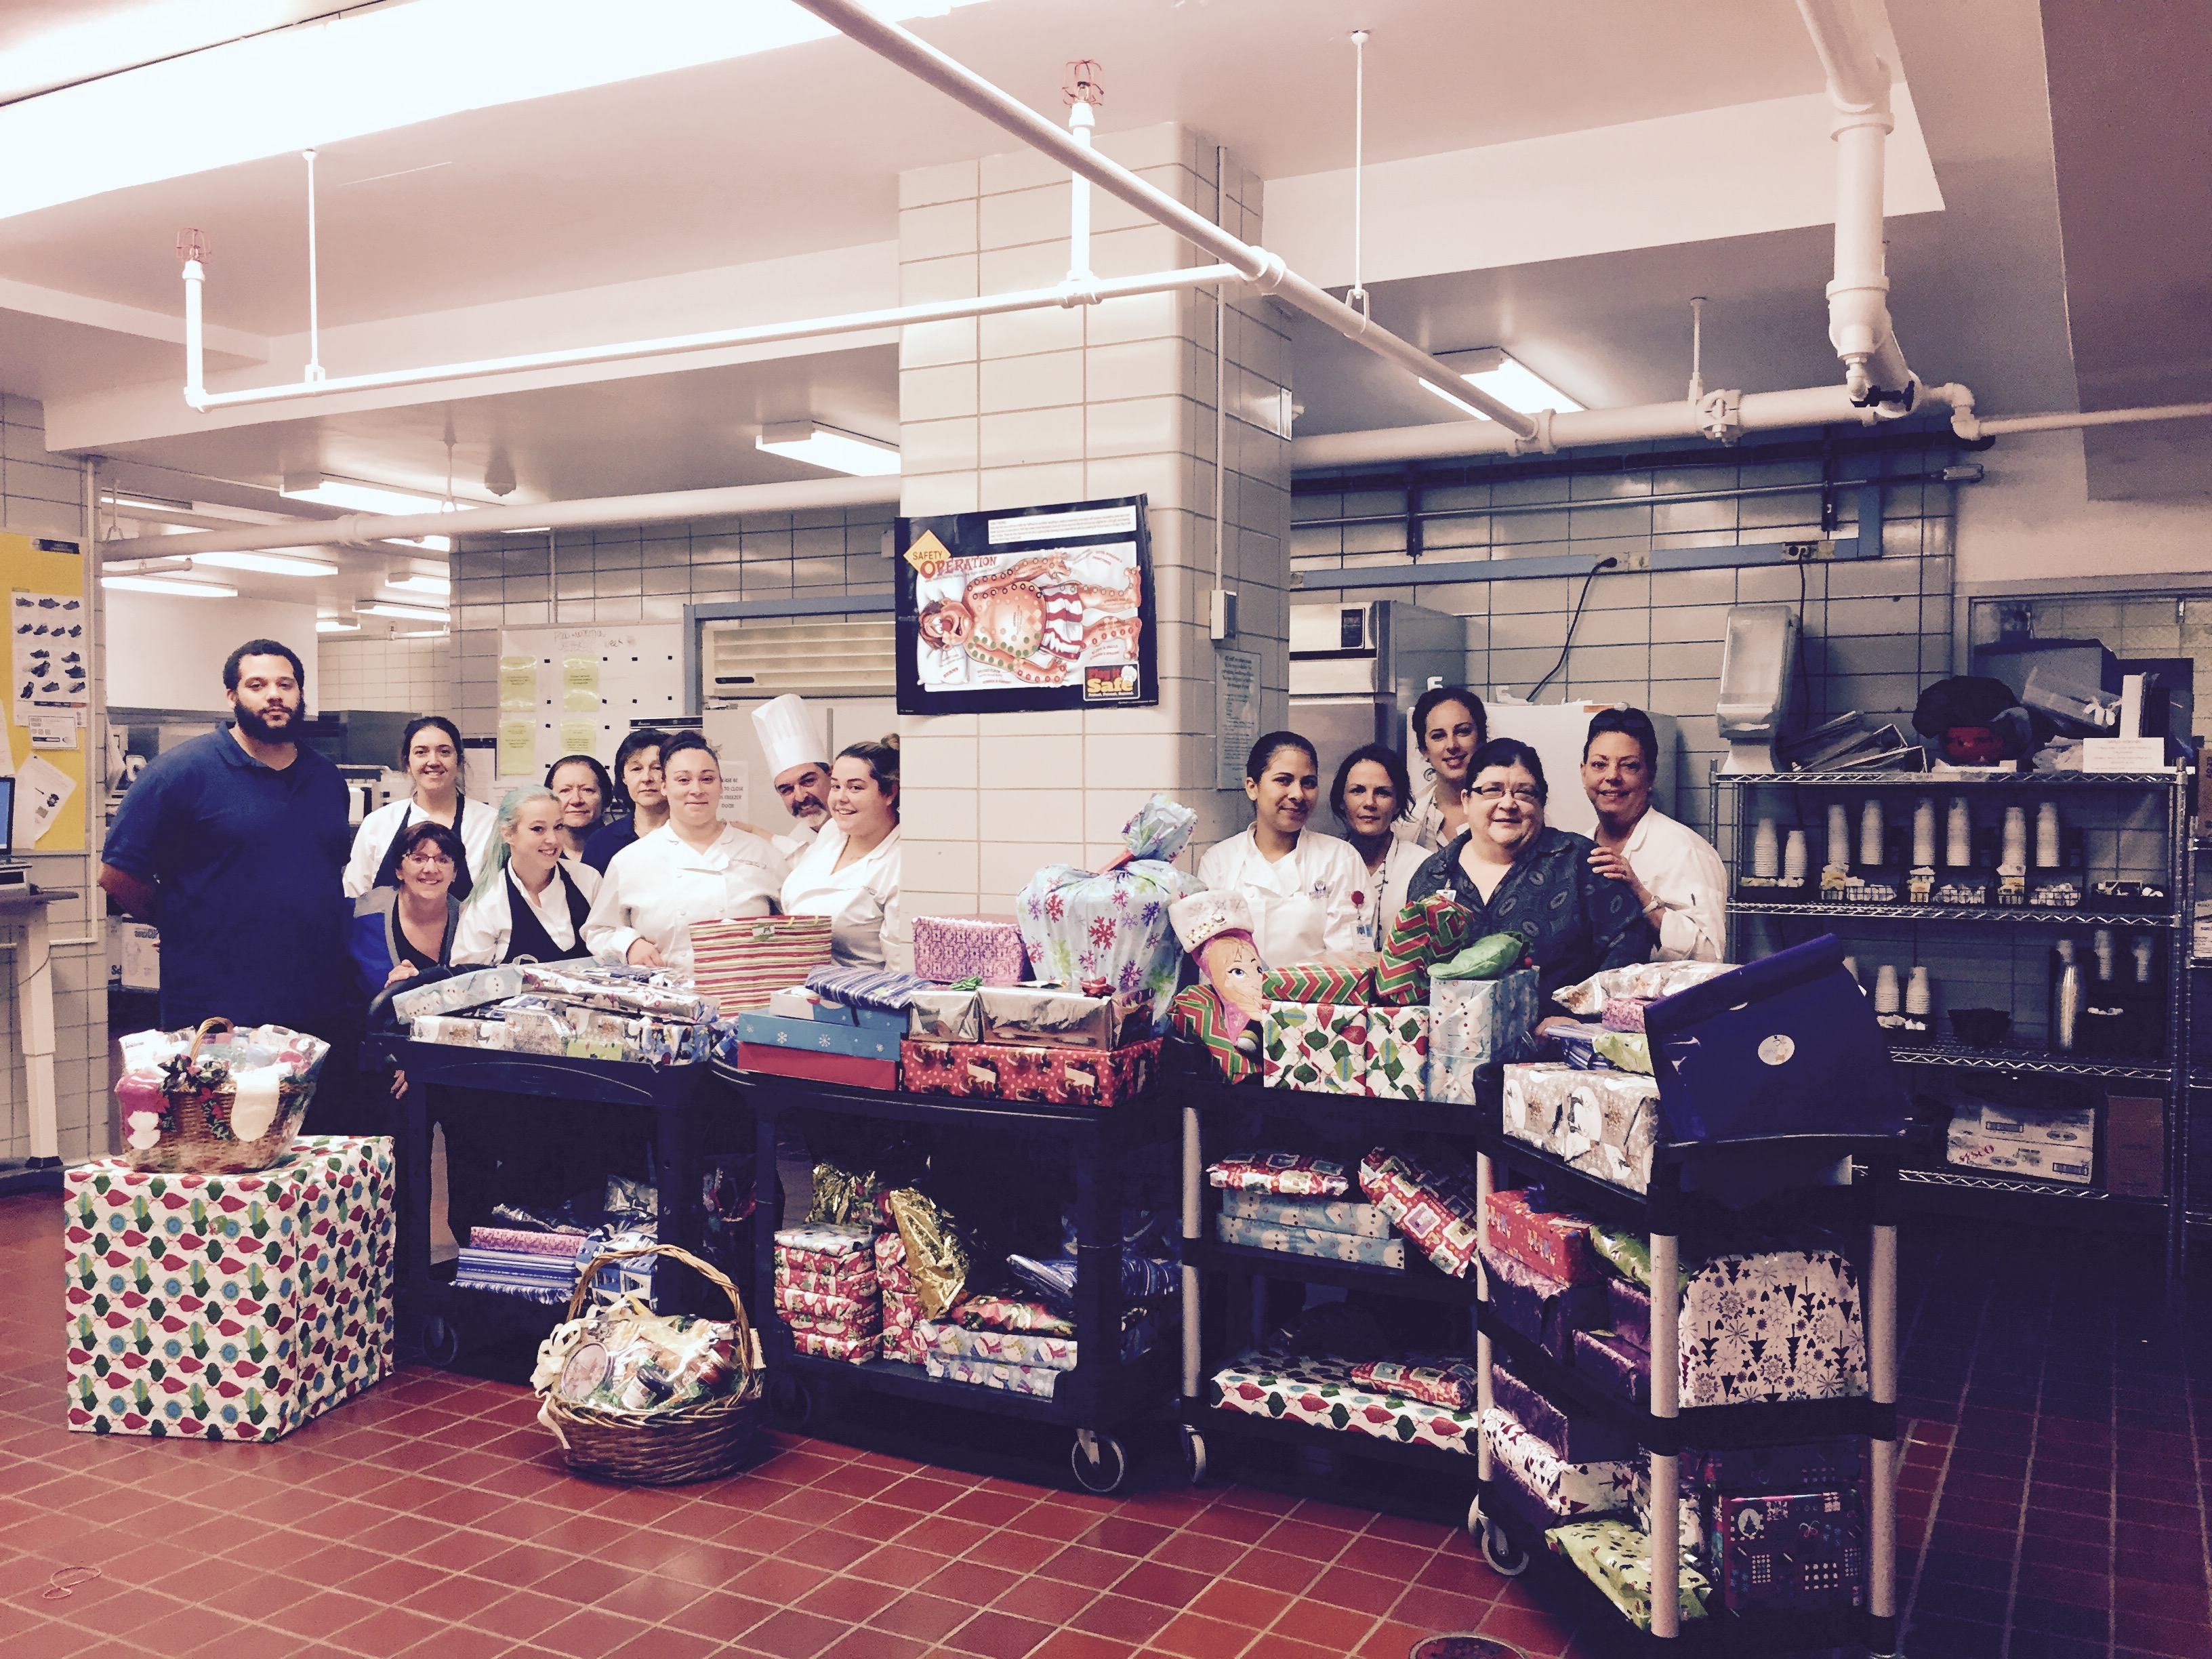 Waterbury Hospital Food & Nutrition Services Team Provided Gifts for a Single Mom and her Four Children This Holiday Season